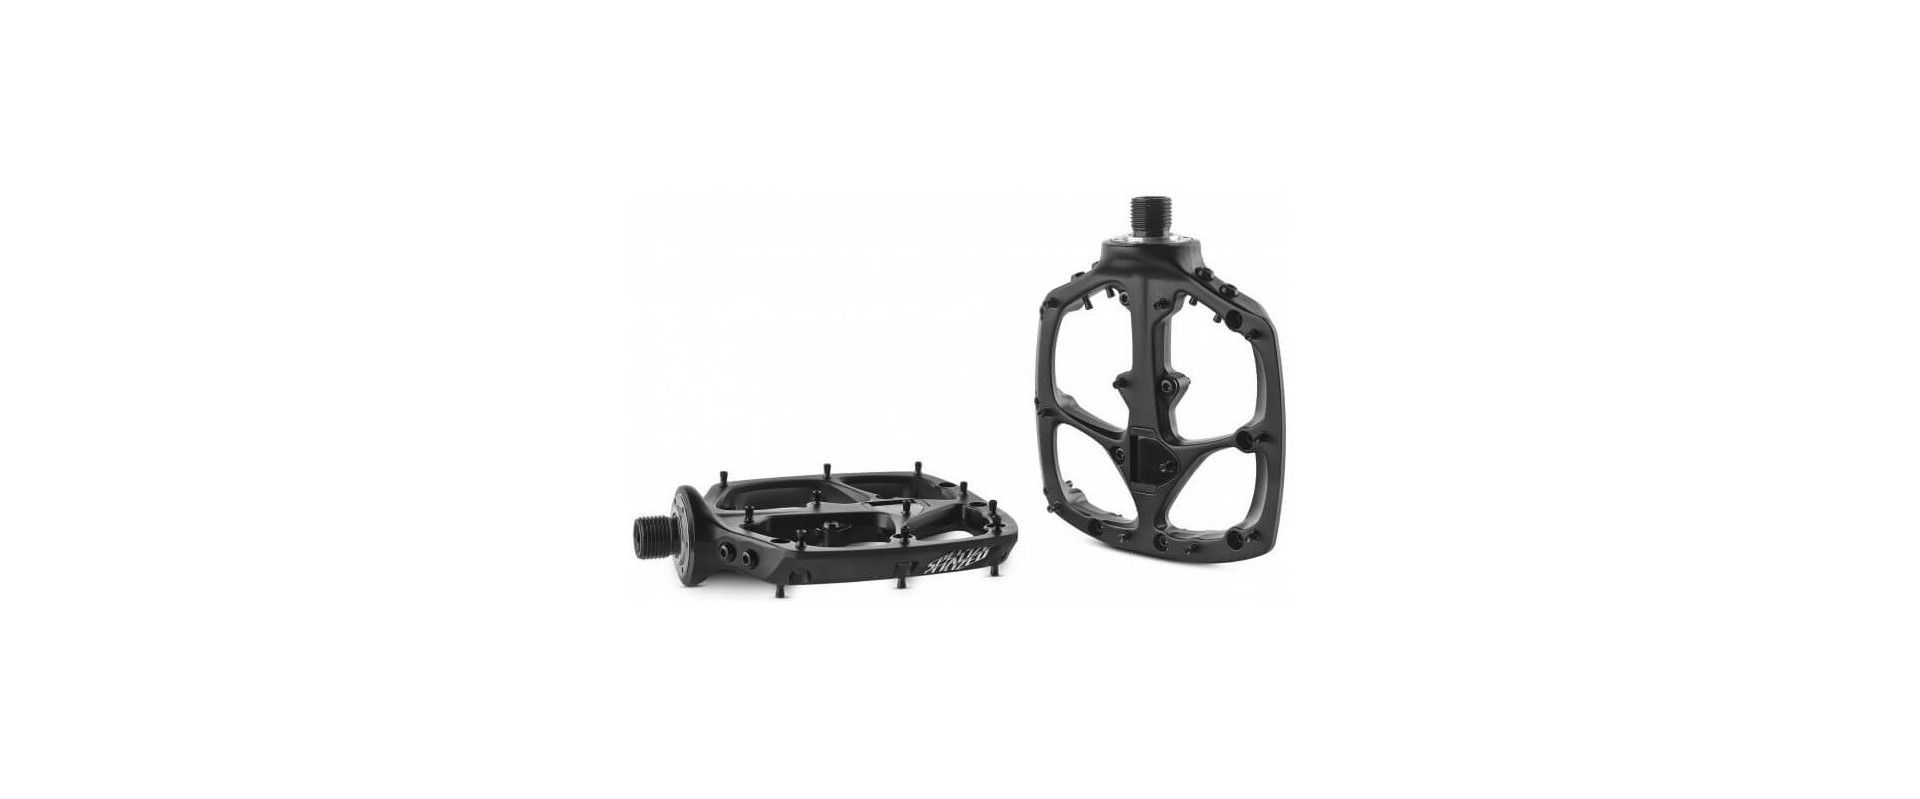 ♥ Air pumps for bicycles ♥ Specialized Brand Store Bicycle Store and Components